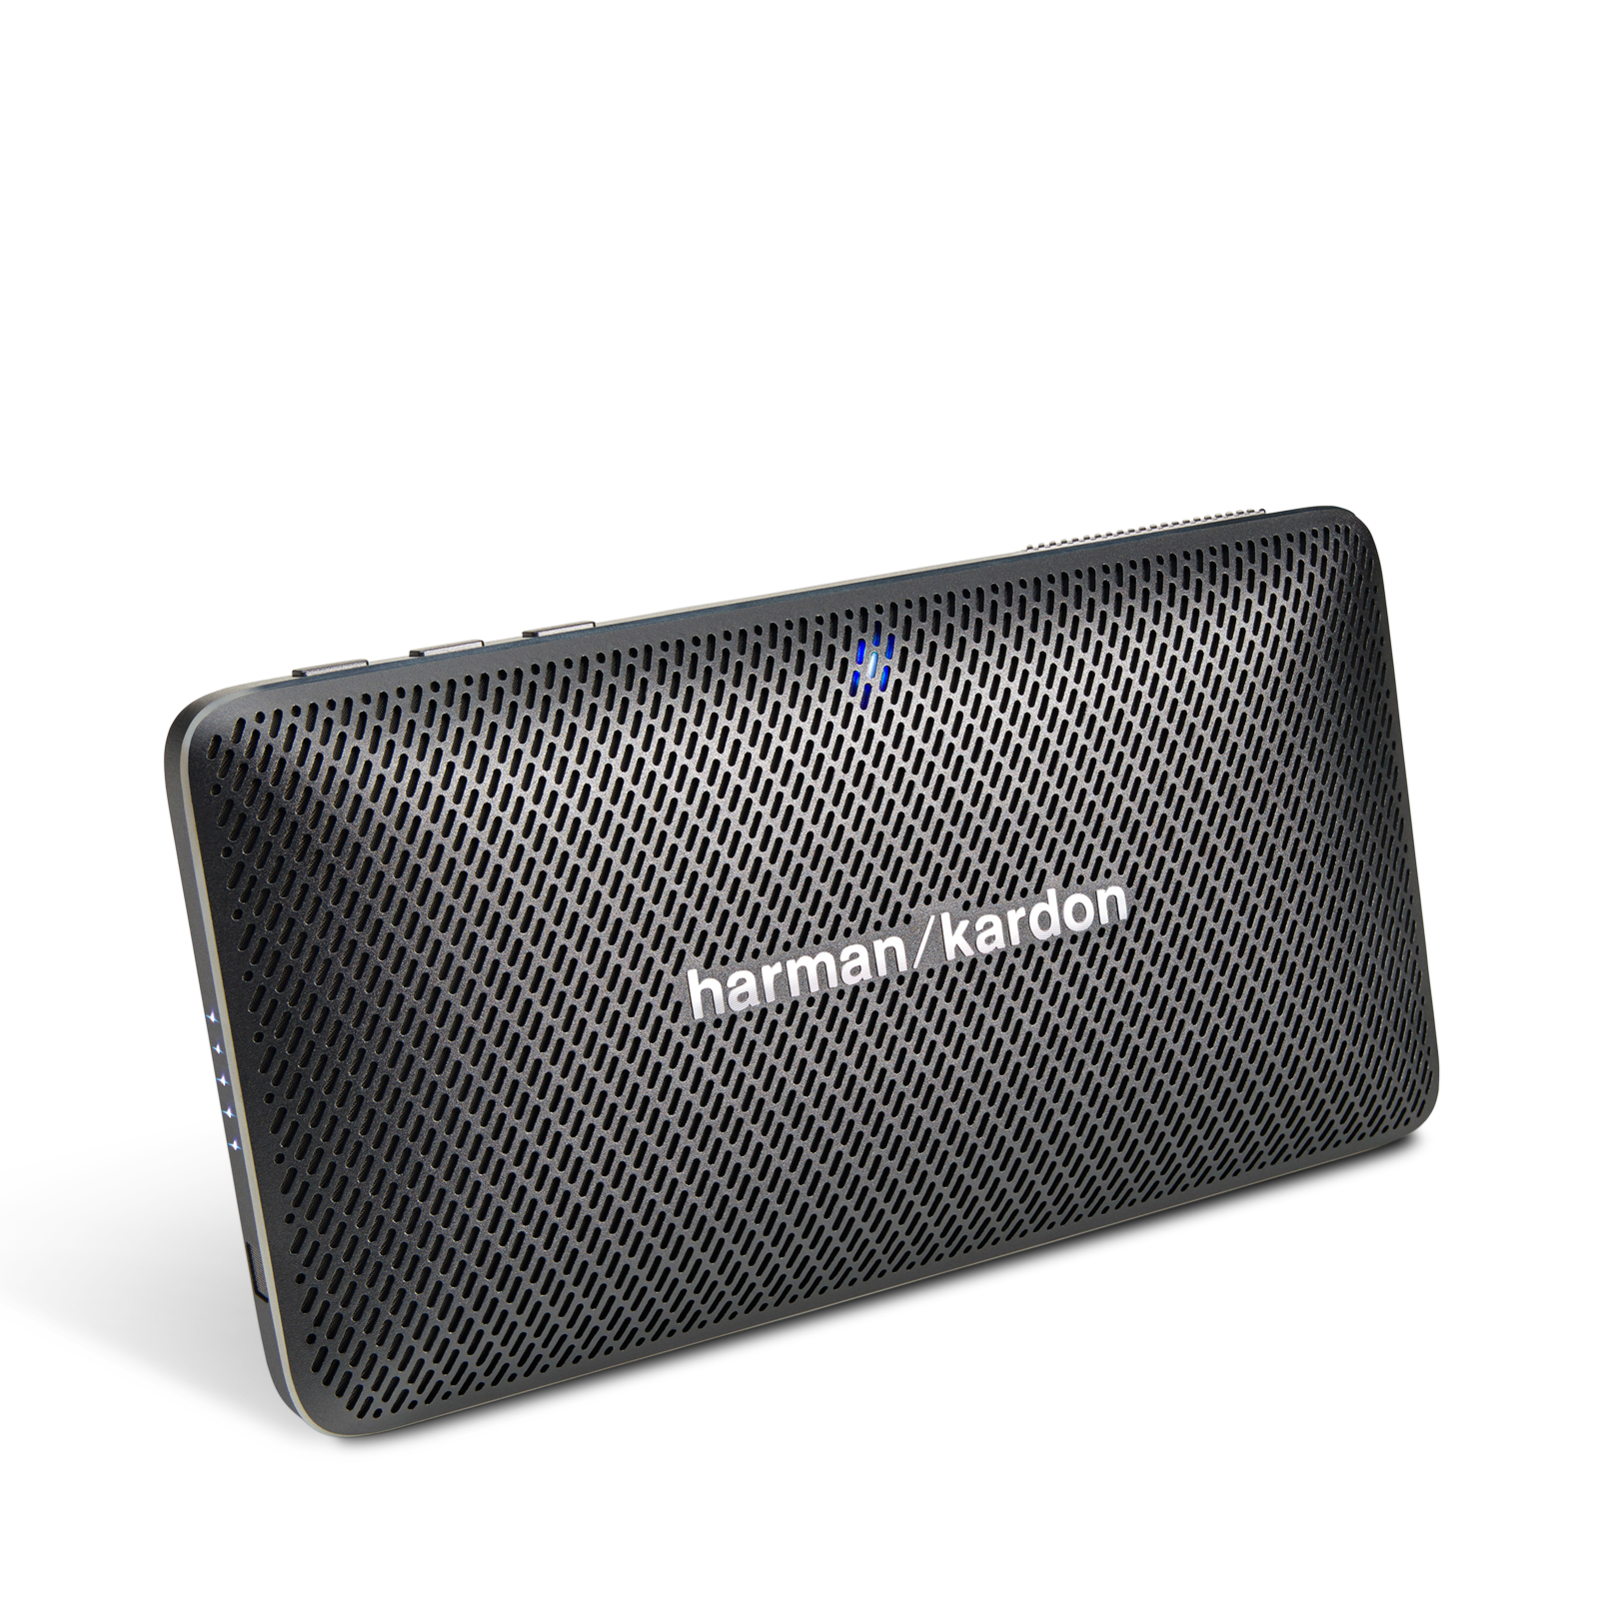 Esquire Mini - Grey - Wireless, portable speaker and conferencing system - Detailshot 4